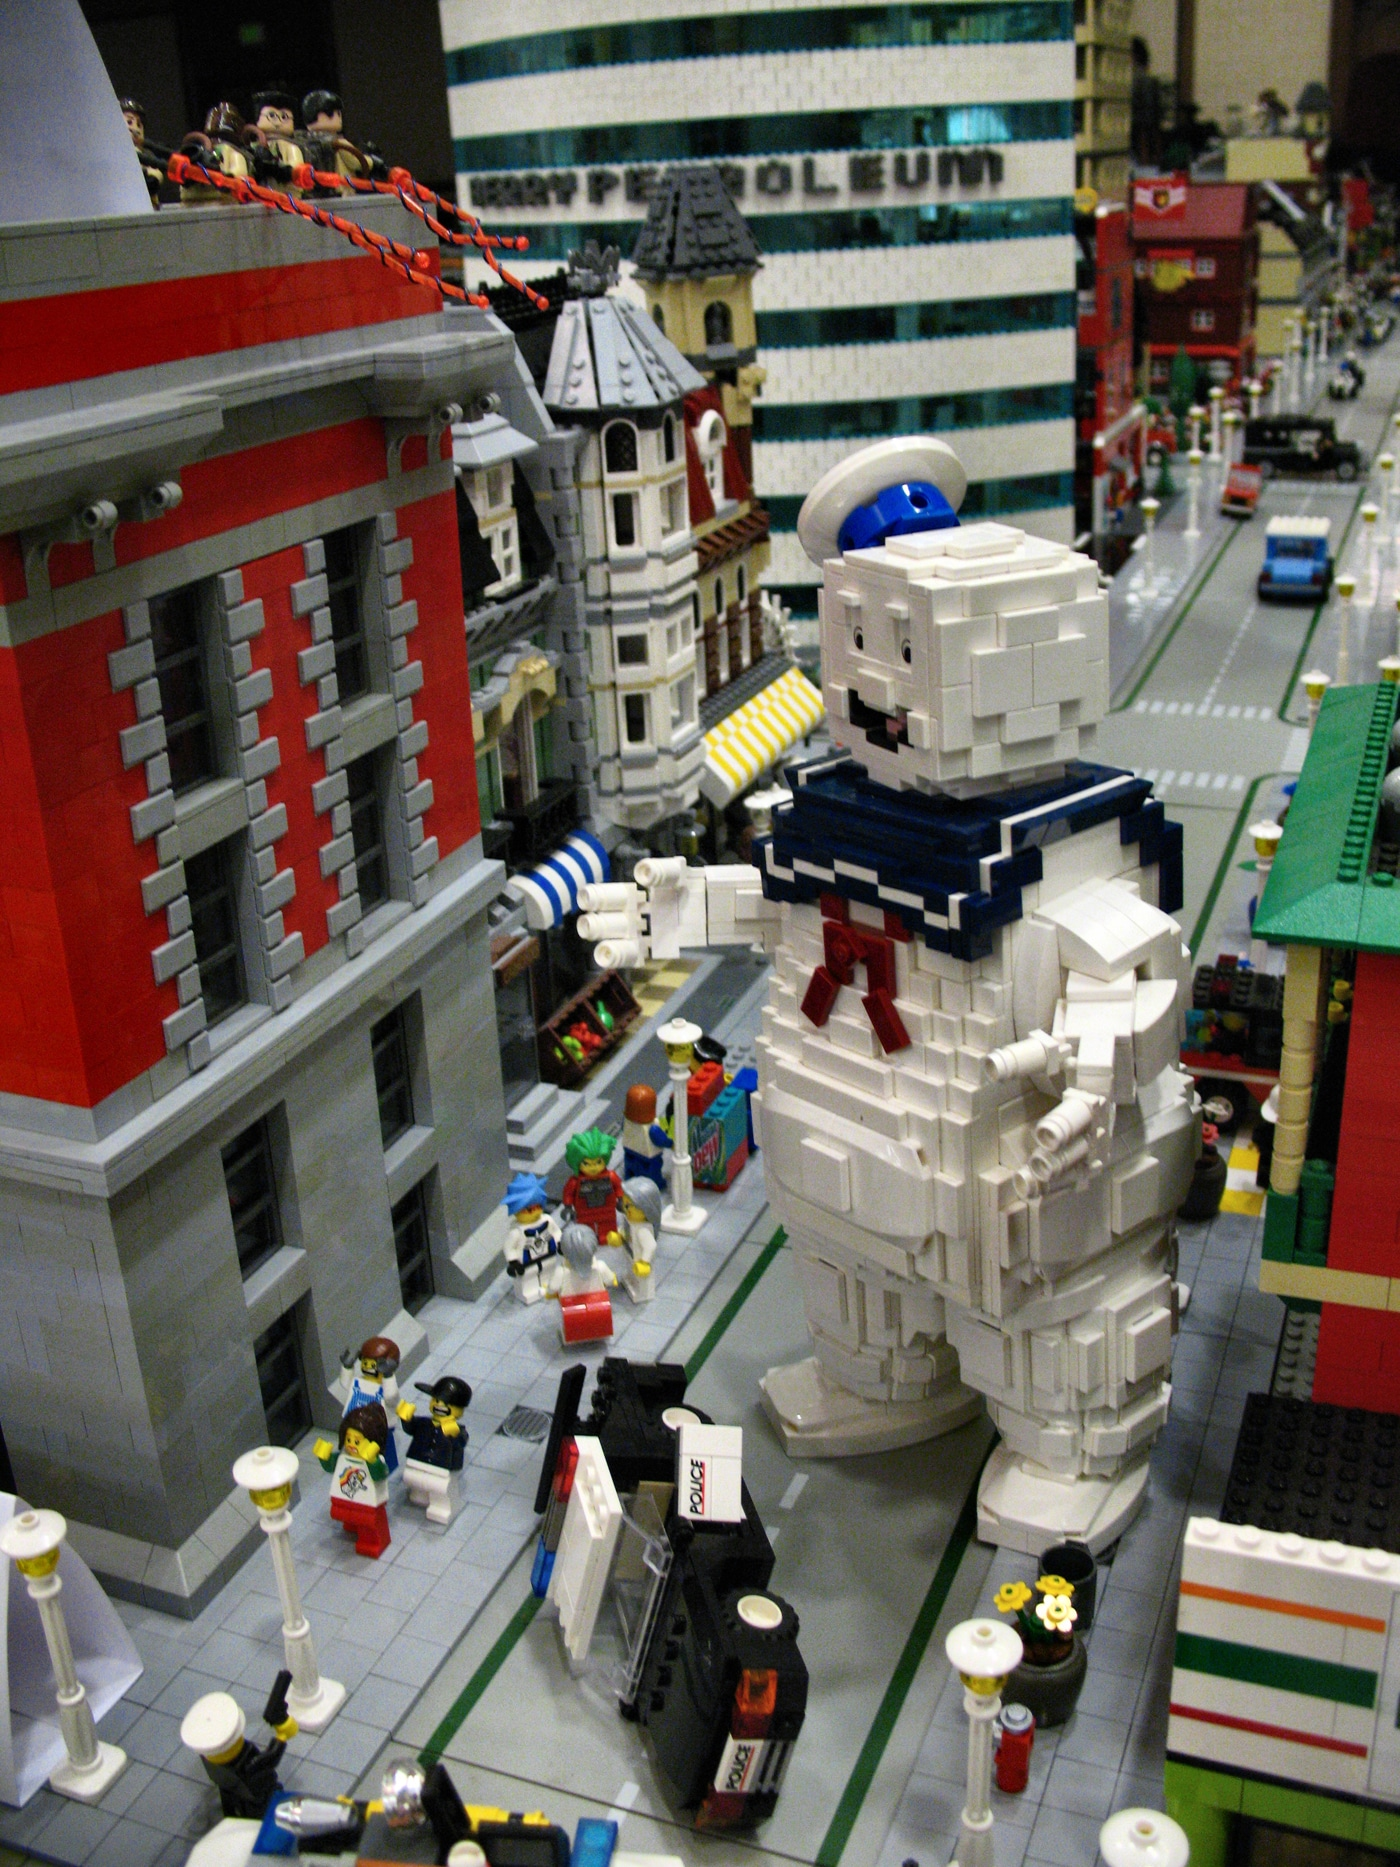 ghostbusters-movie-scene-in-lego